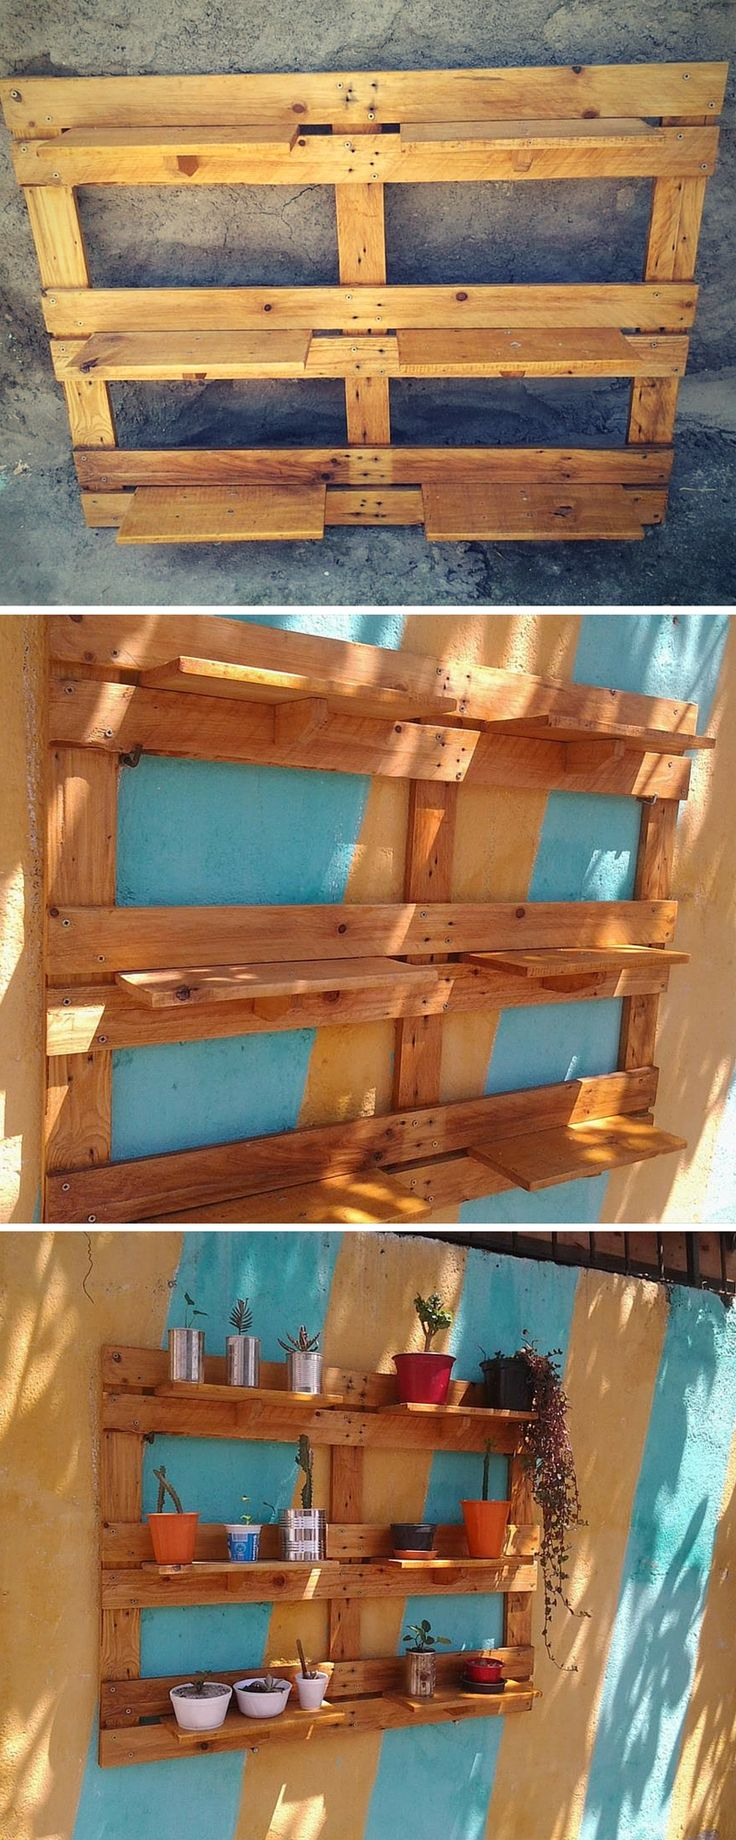 DIY #Pallet Garden Wall #Planter / Shelving Unit - 99 Pallets